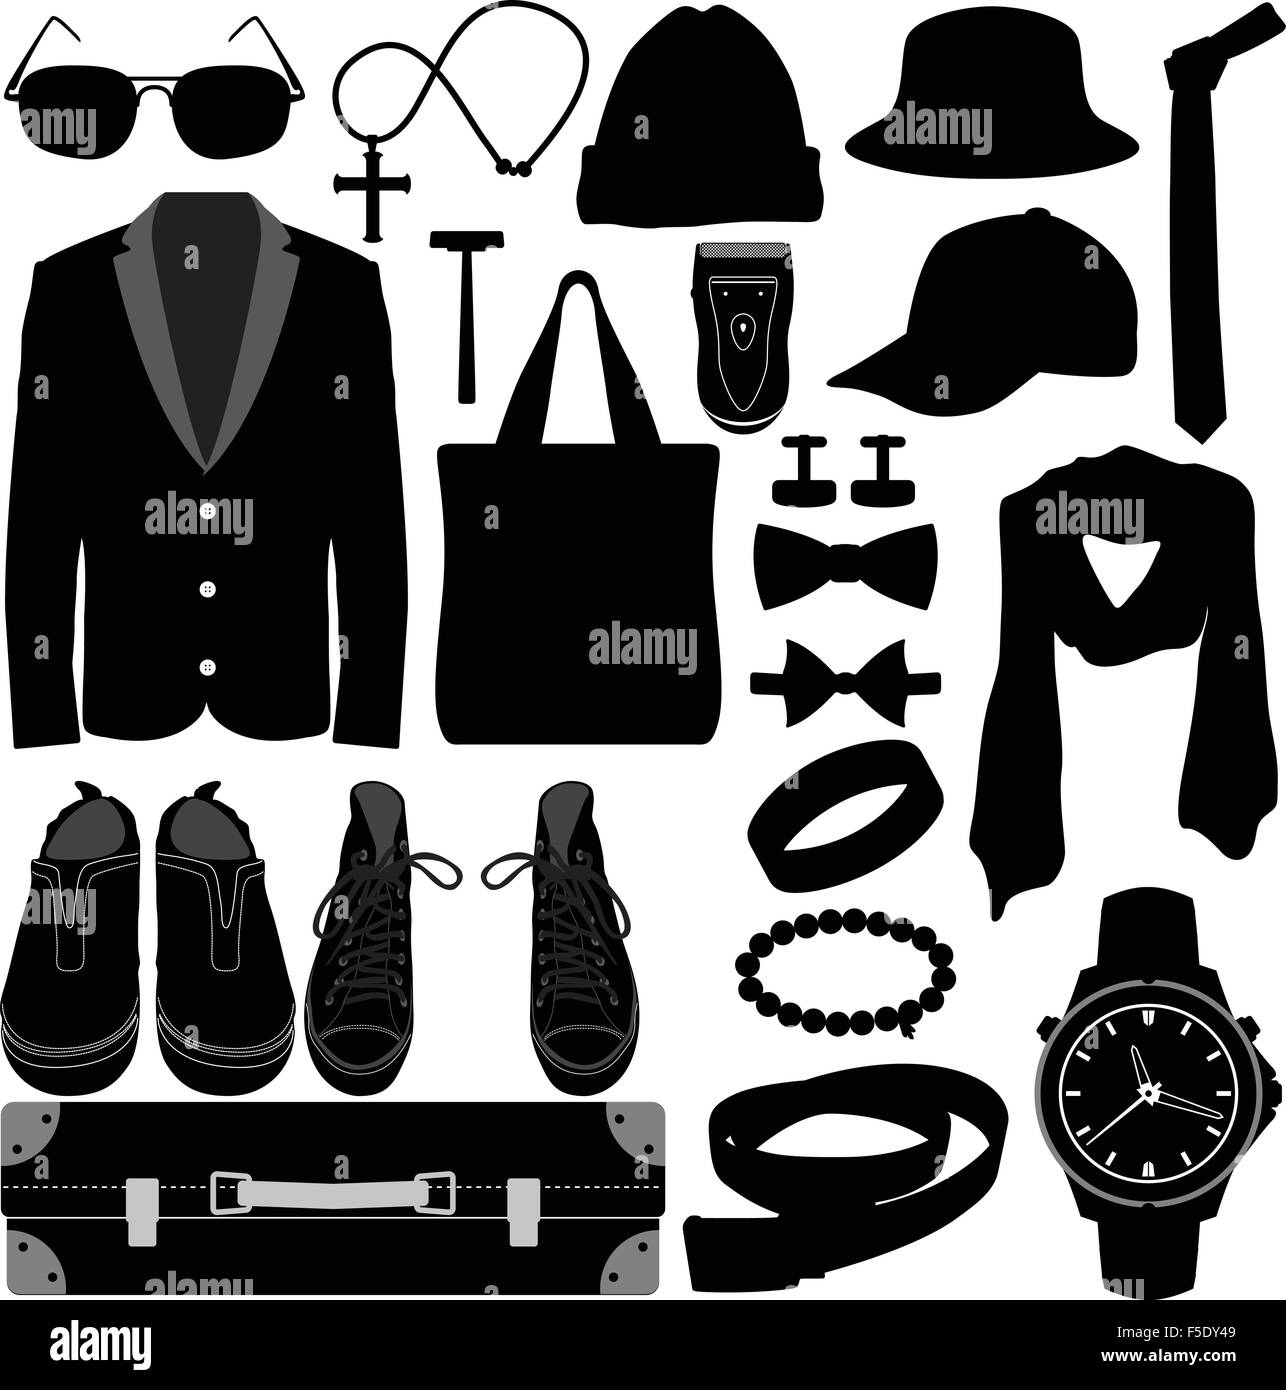 Man Male Clothing Wear Accessories Fashion Design Stock Vector Image Art Alamy